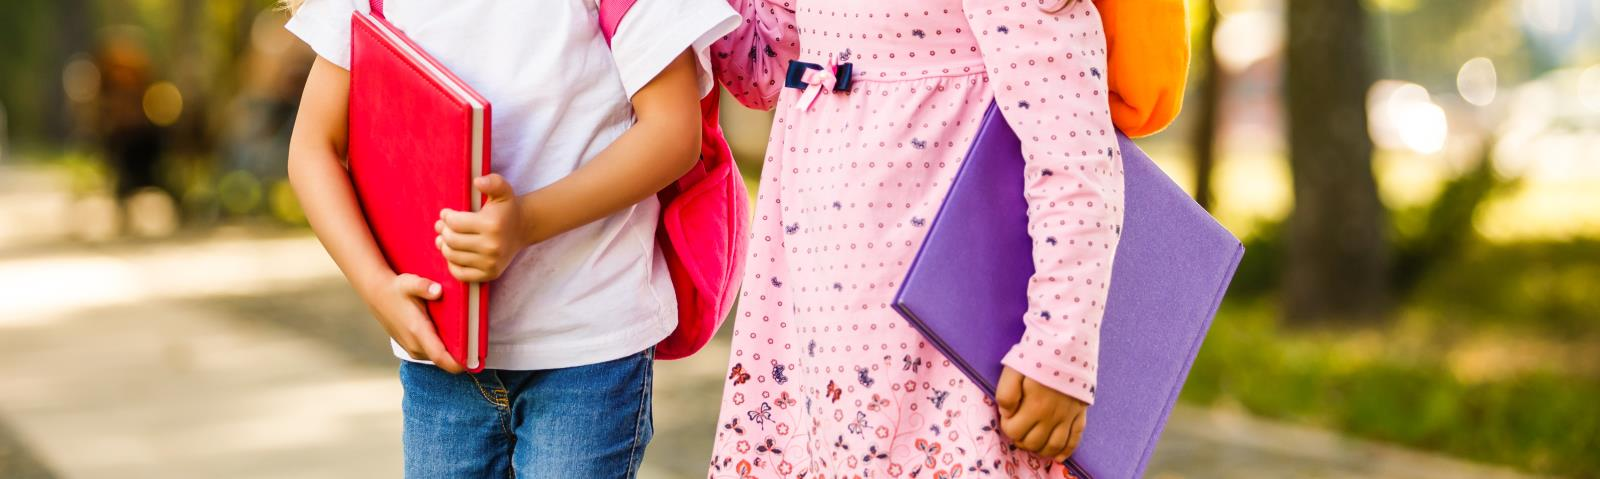 image of two young girls walking from or too school side by side